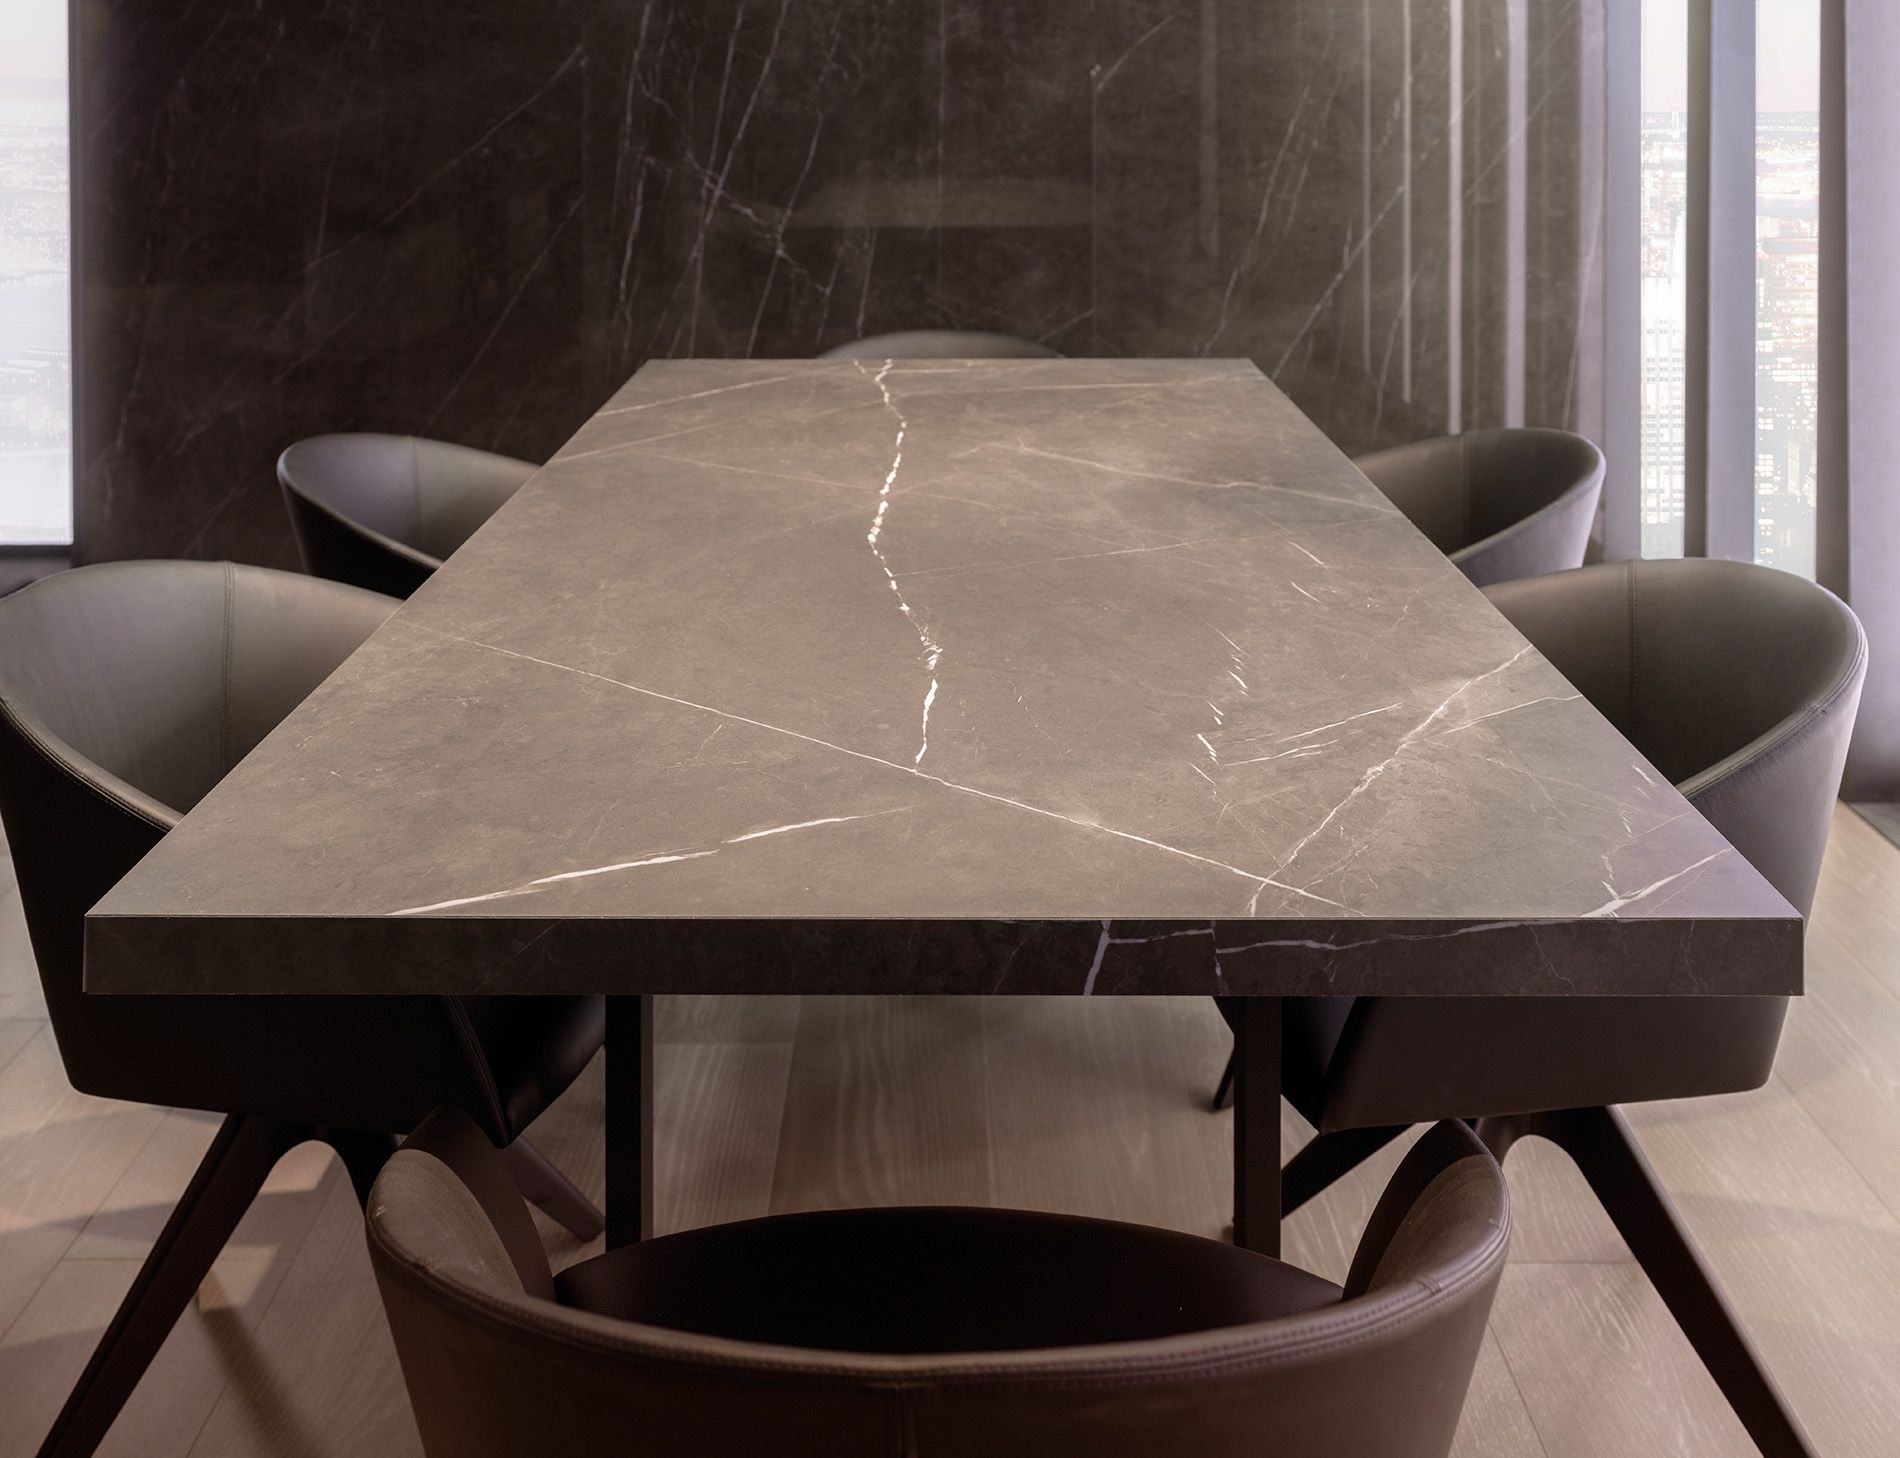 GAME ROOM table and chairs PORCELANOSA Gres porcelánico de fino